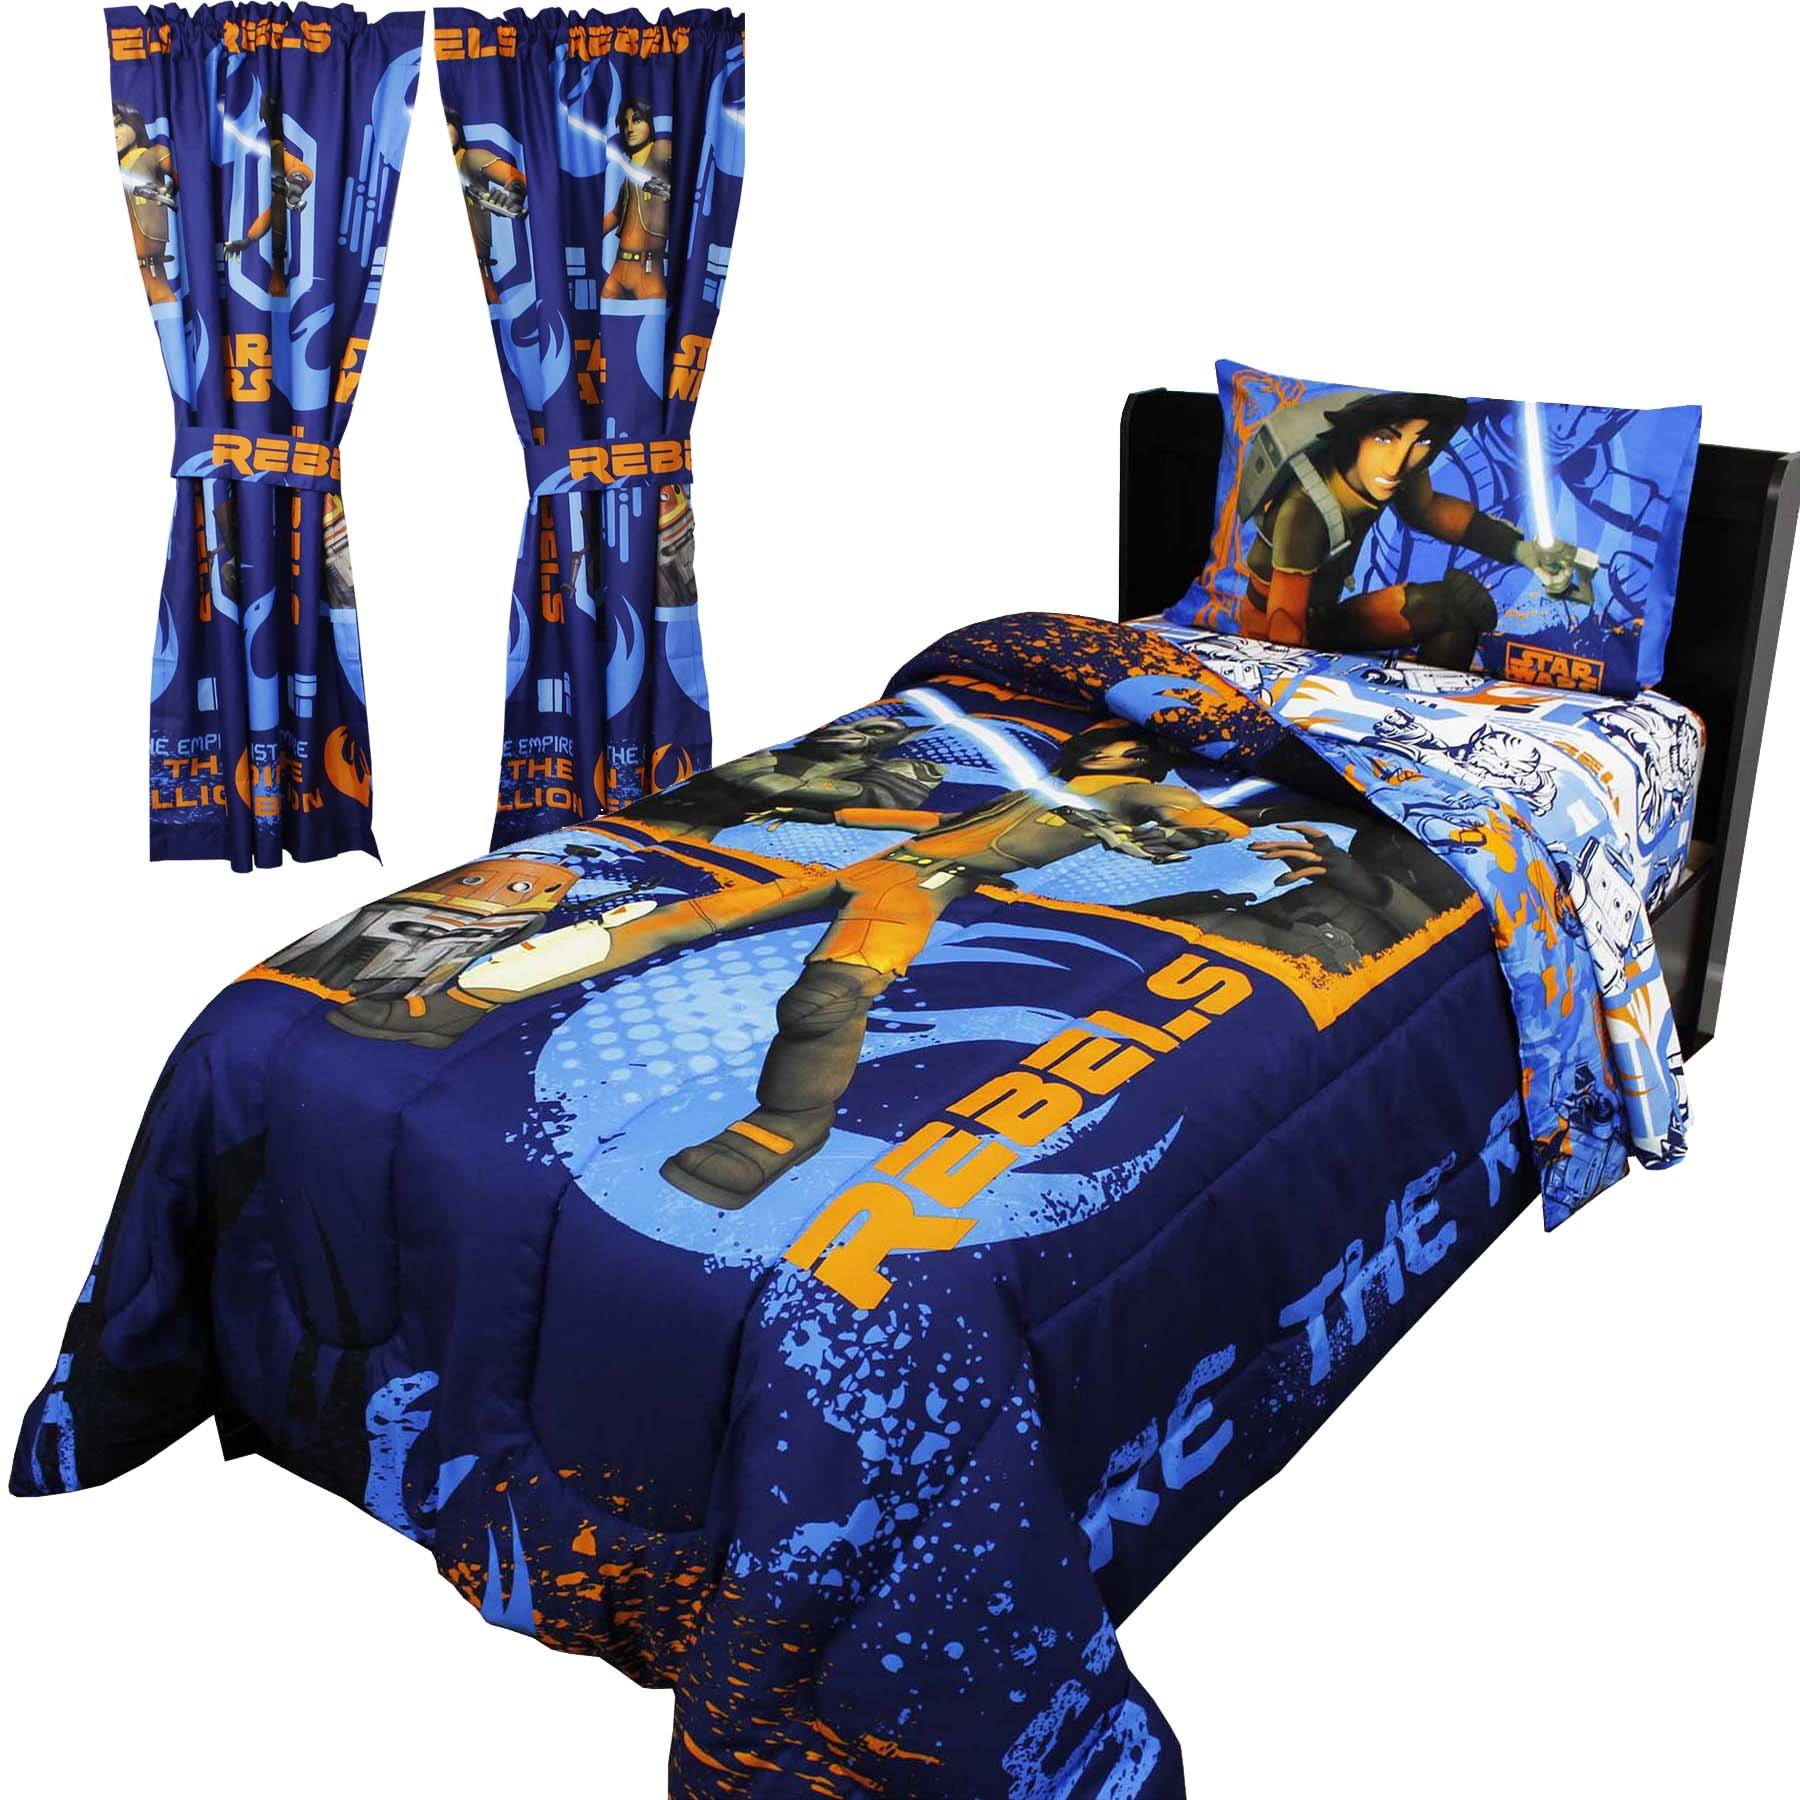 8pc Star Wars Twin Bedroom Set Rebels Fight Comforter Sheets and Window Panels with Tie-Backs by Disney (Image #1)